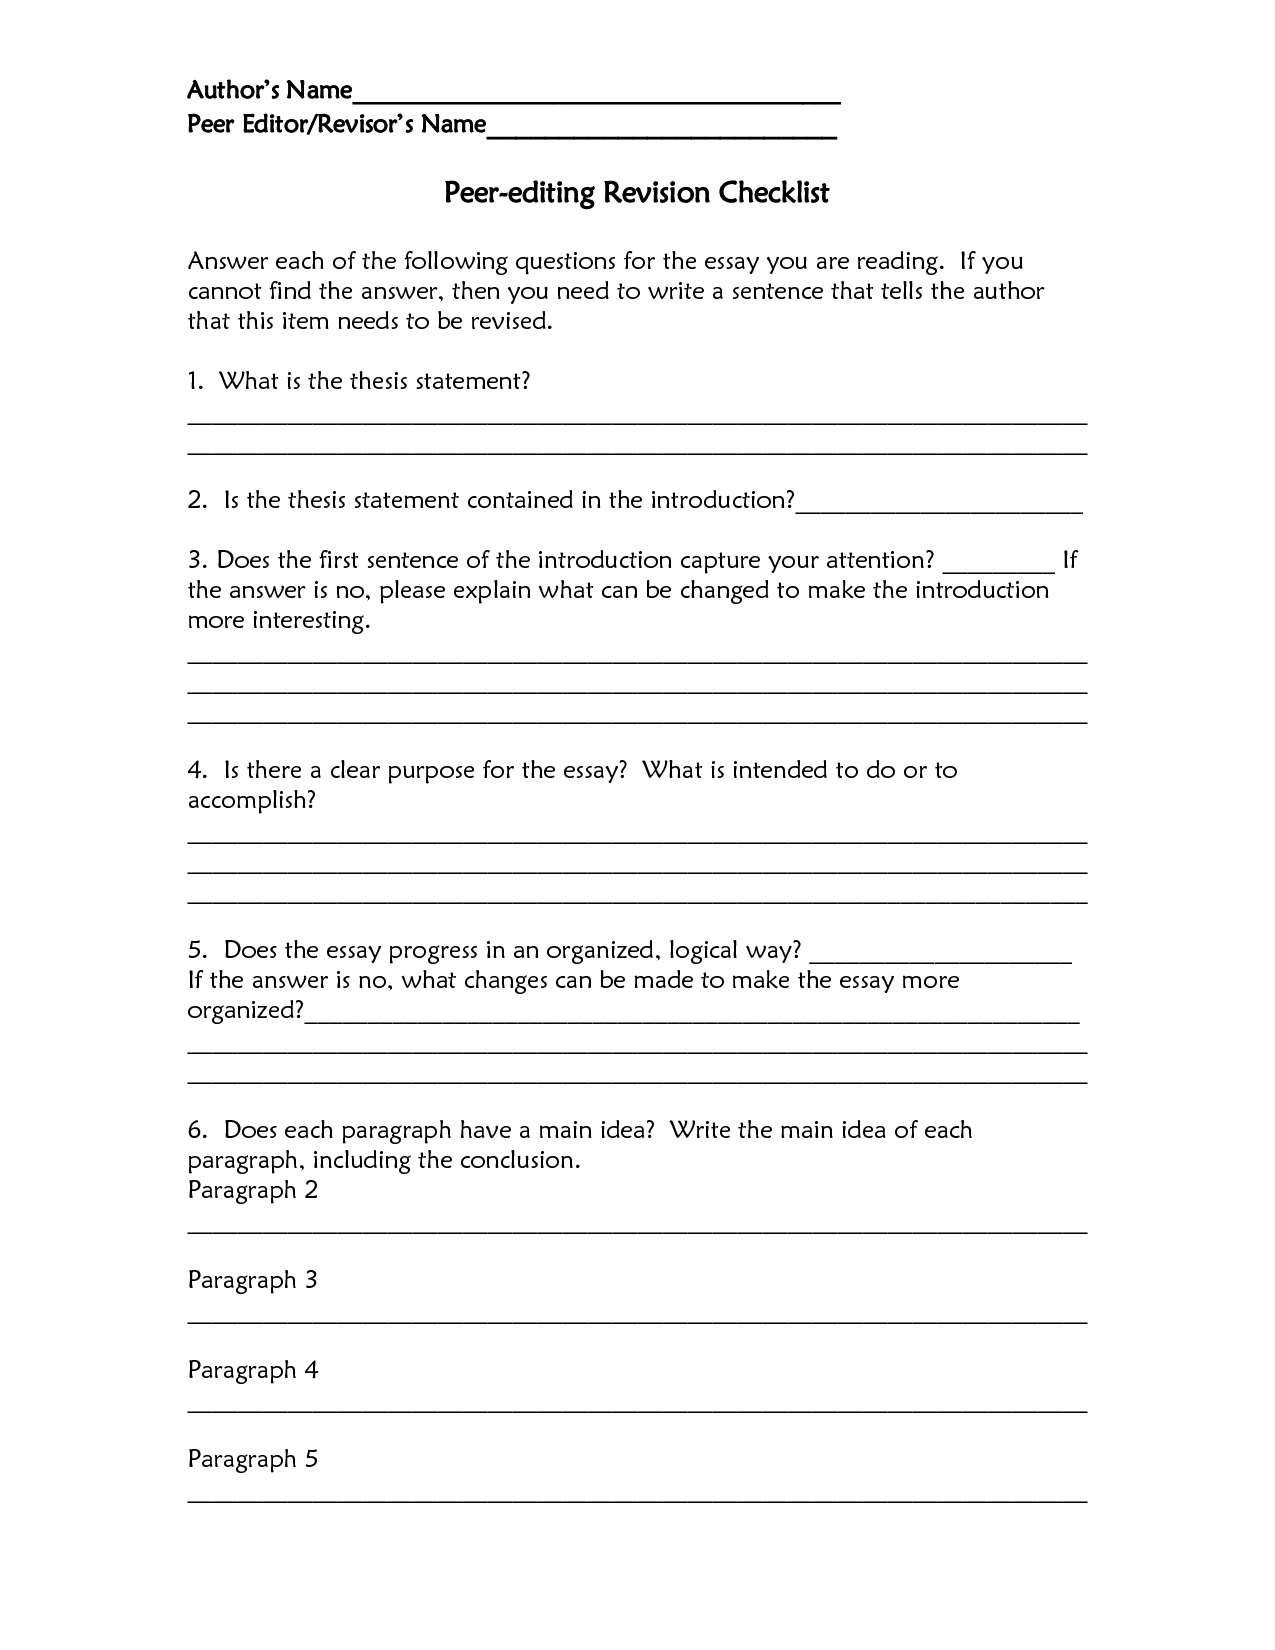 Ucla Admissions Essay Revision Checklist